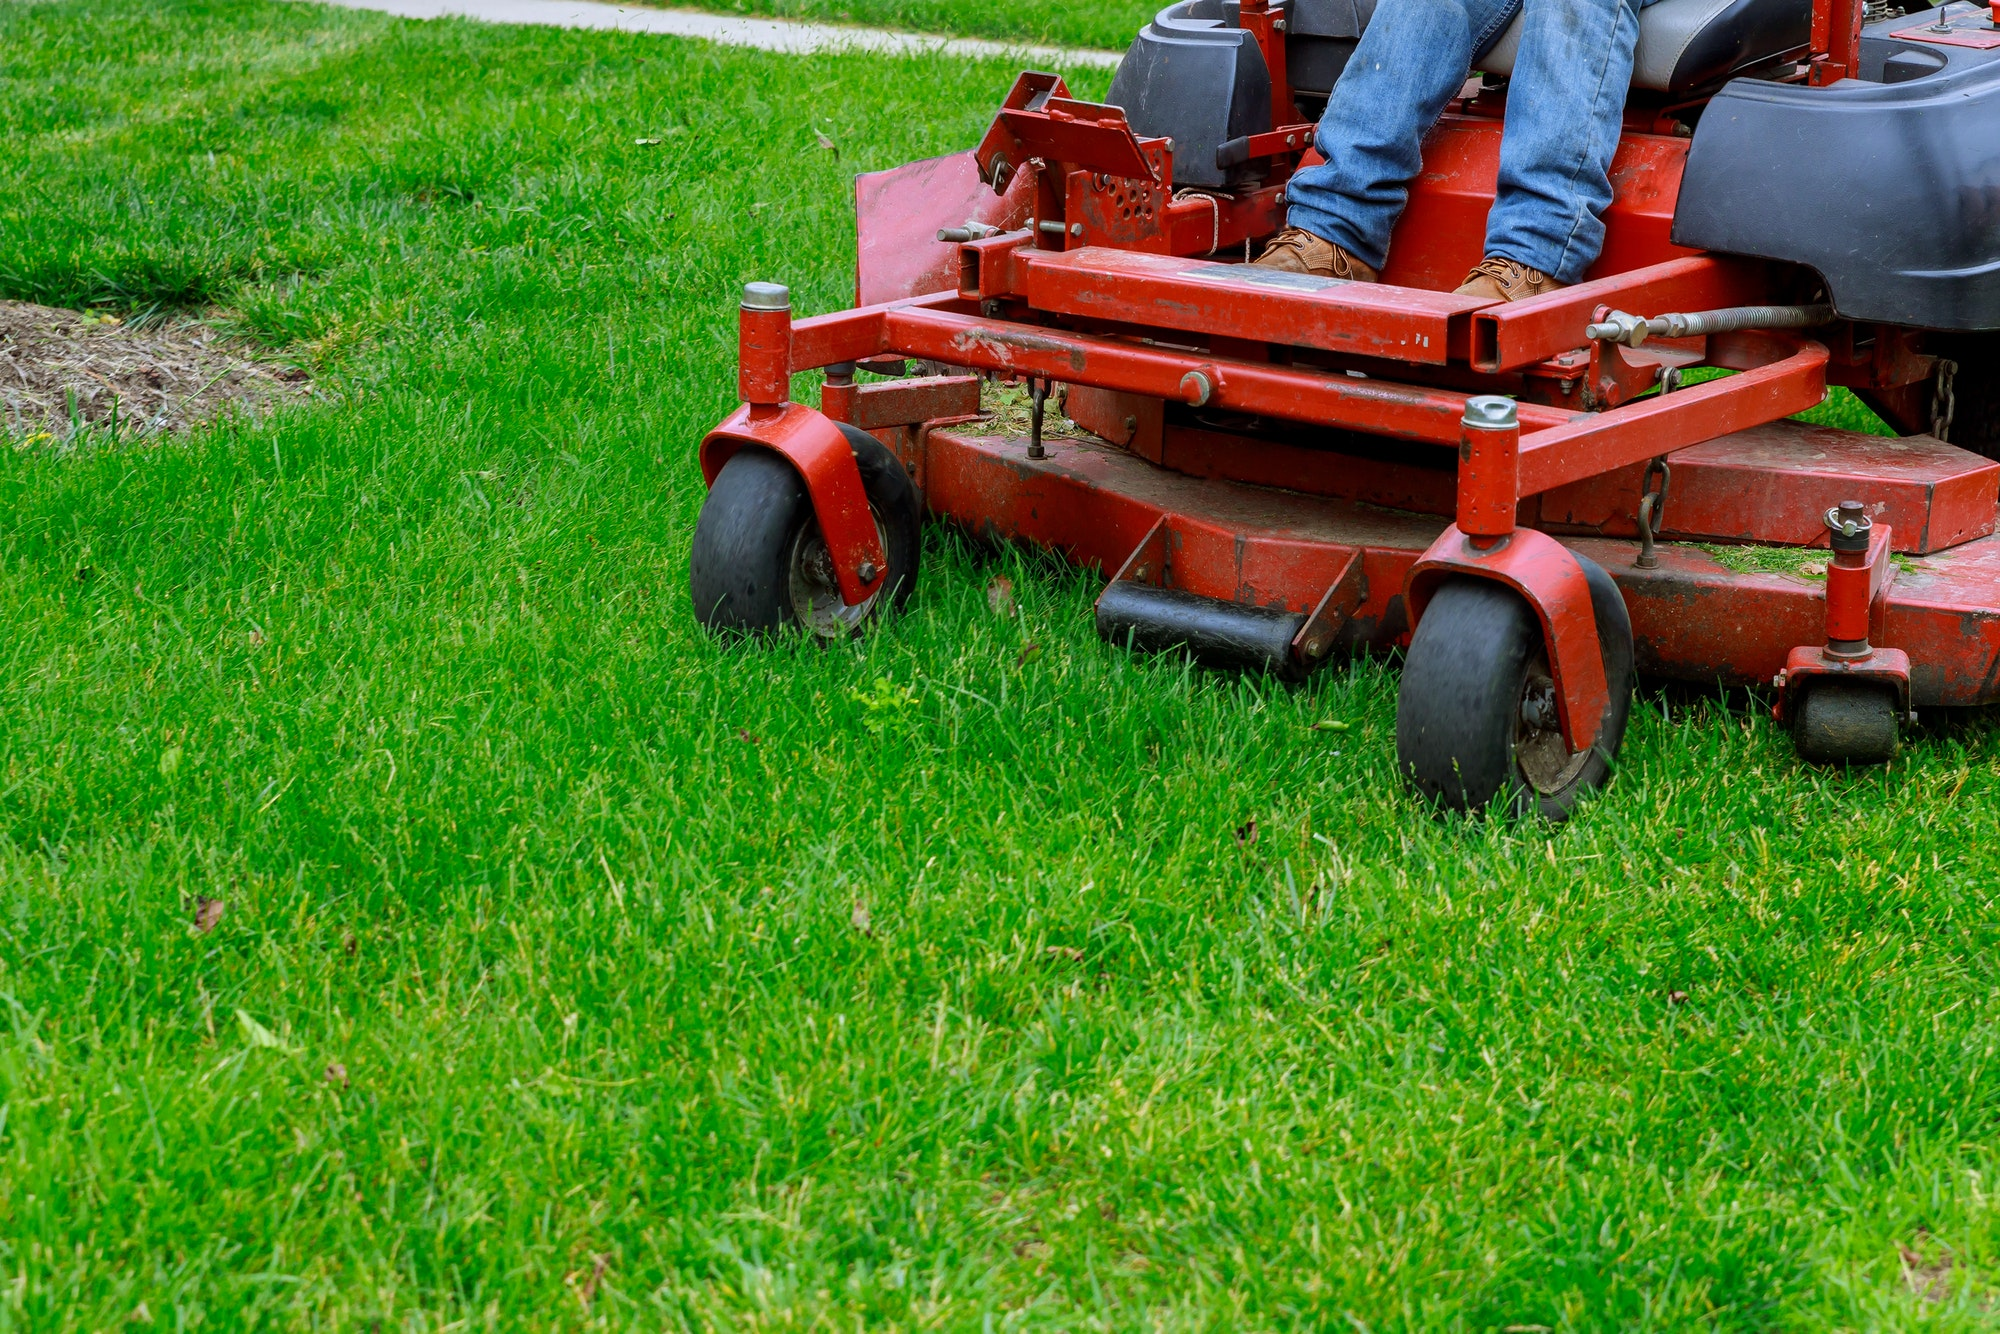 Landscaping Professional gardener with Large of mower cutting the grass